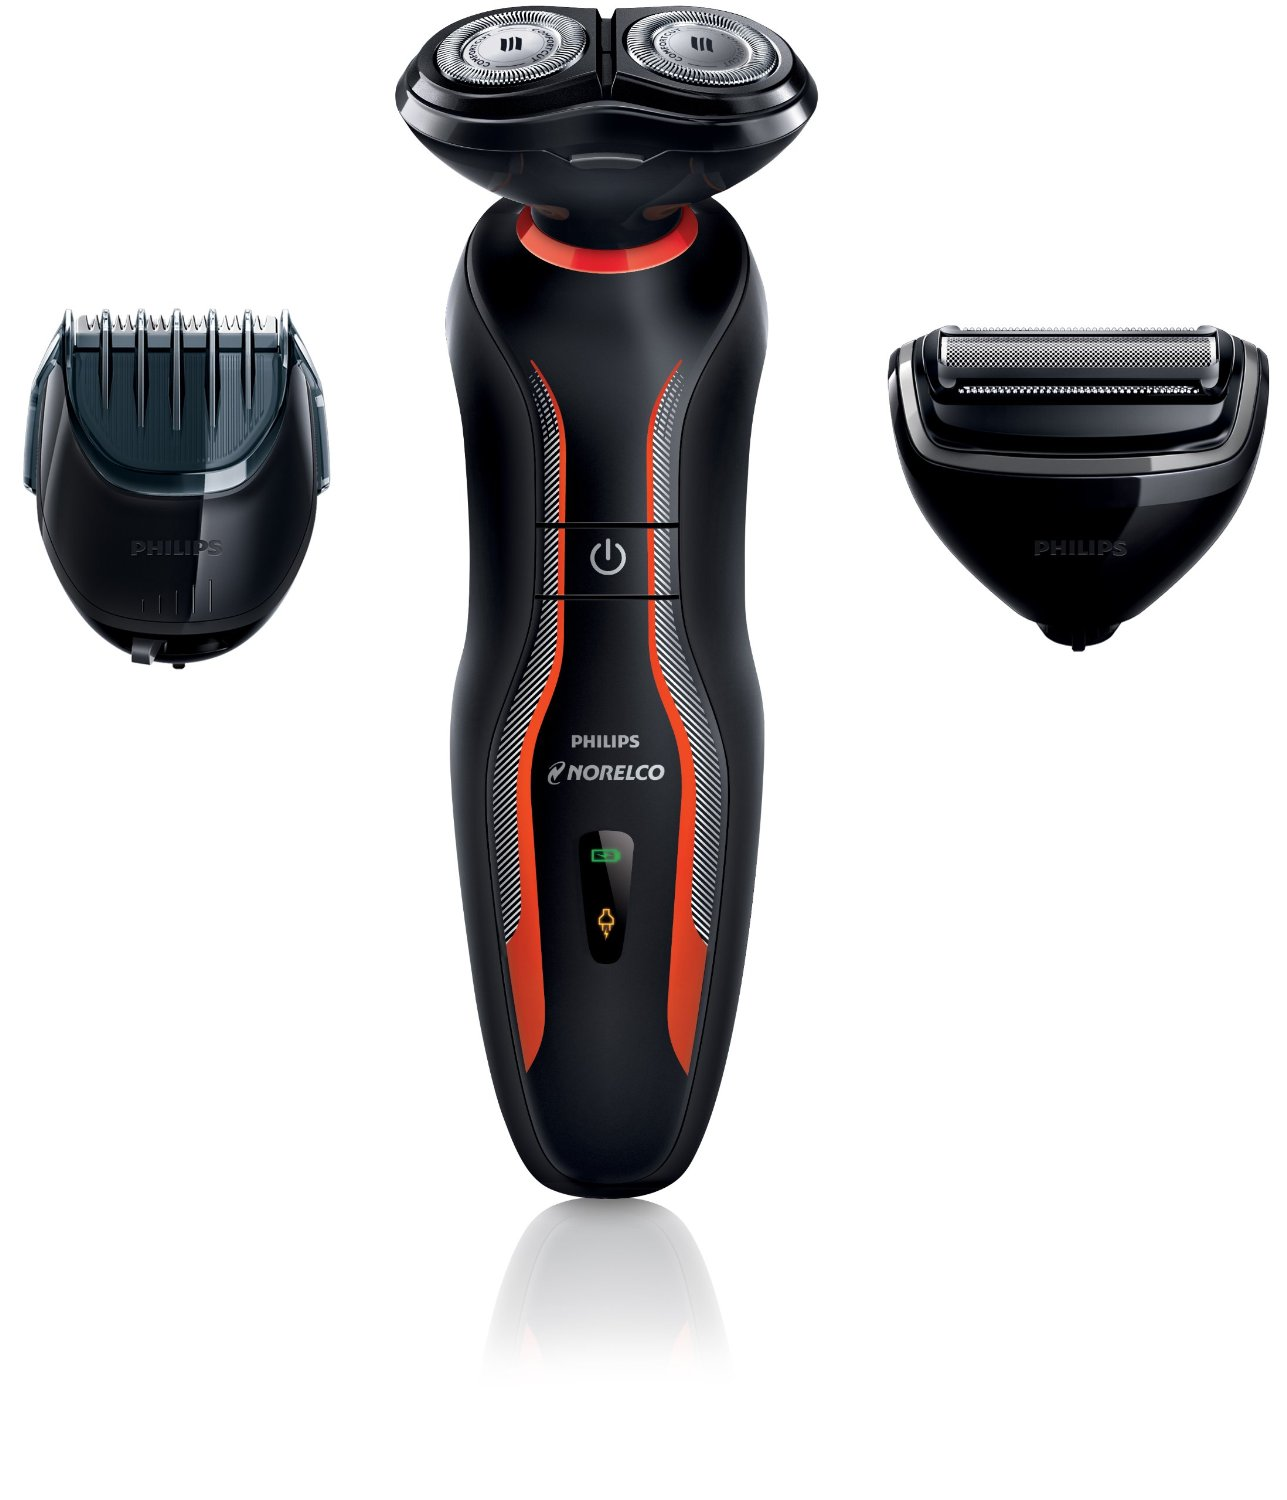 Philips Norelco Click Amp Style Electric Razor Review